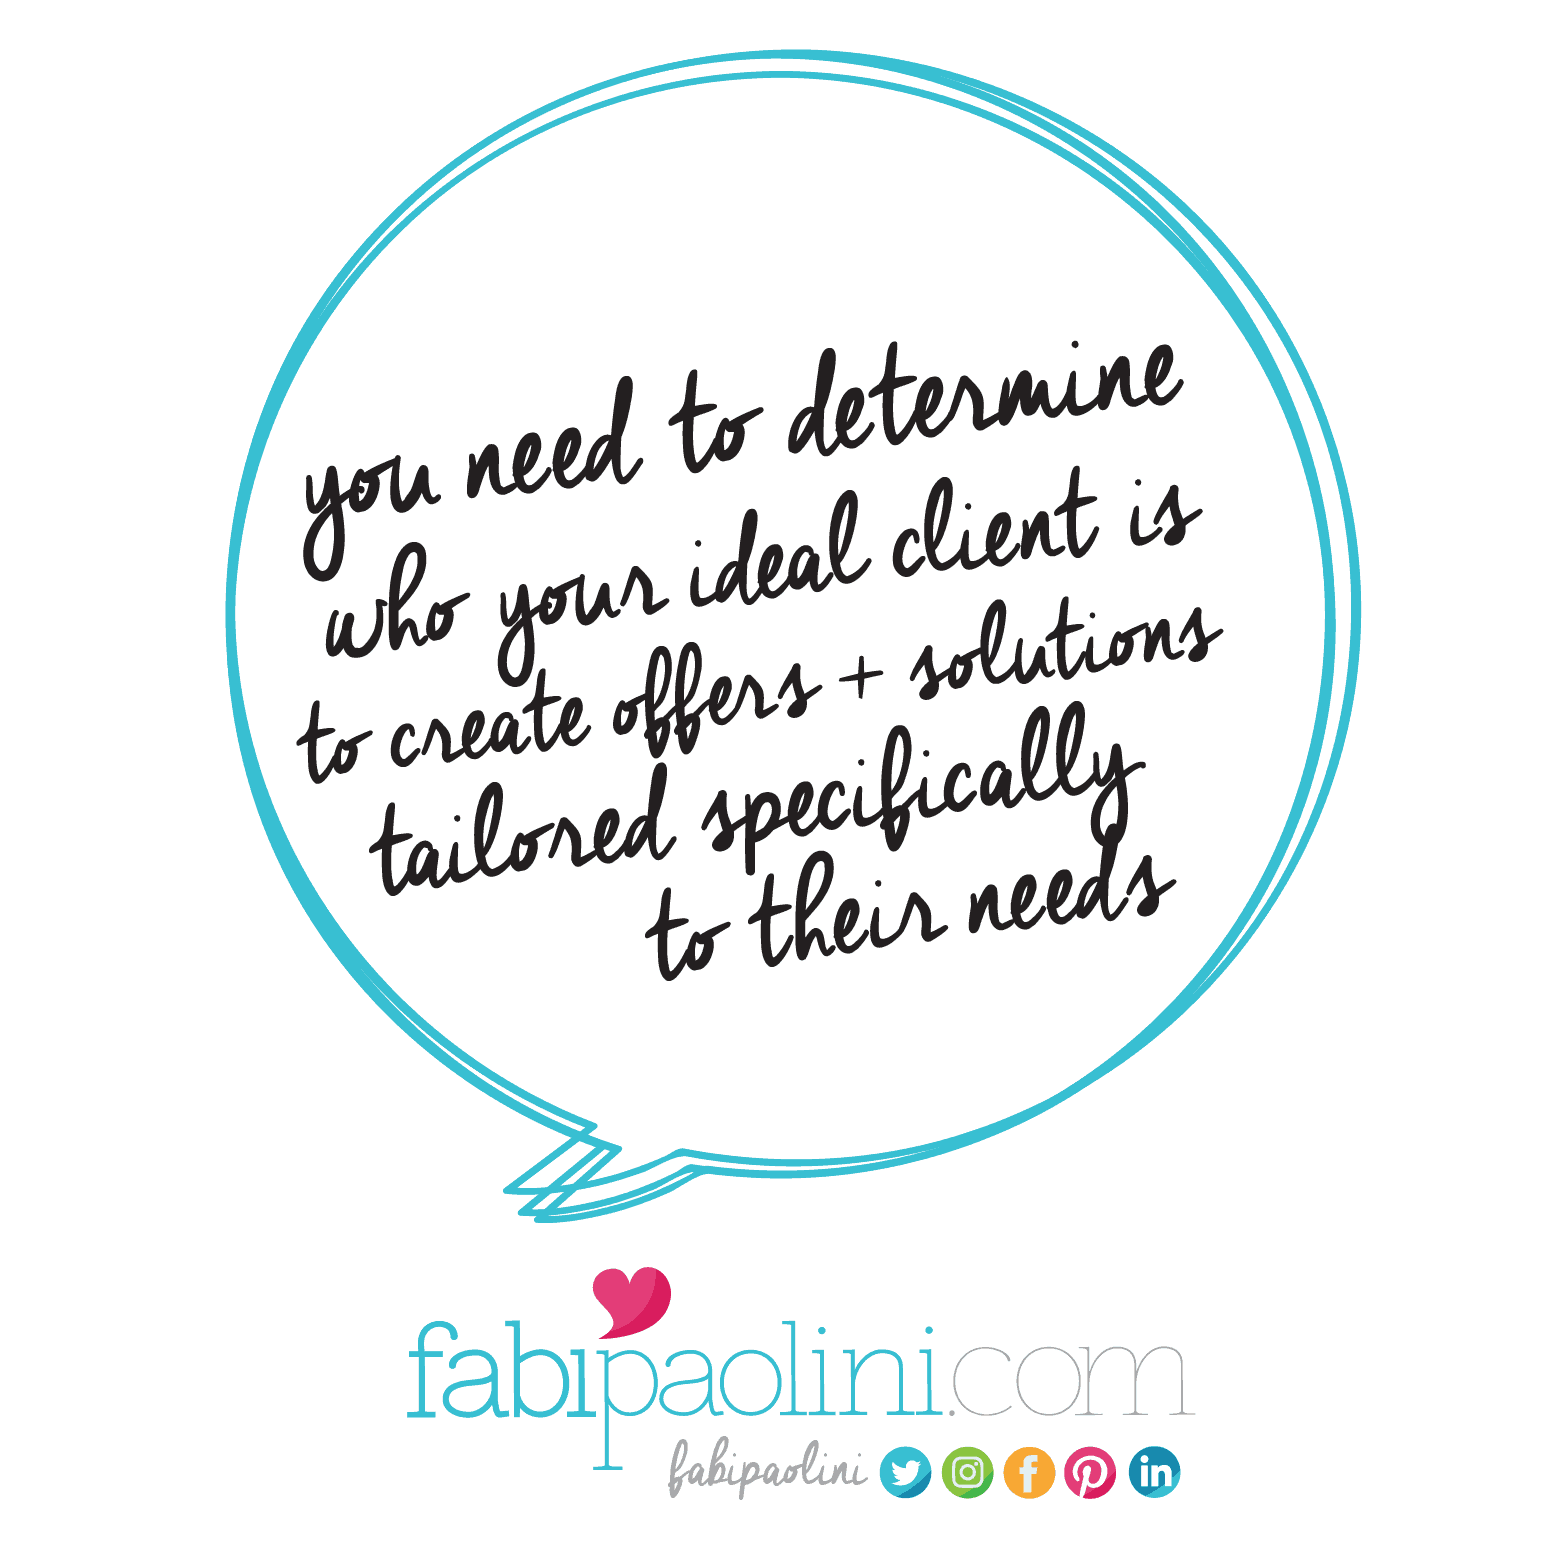 You need to determine who your ideal client is to create offers + solutions tailored specifically to their needs. Fabi Paolini Branding + Design